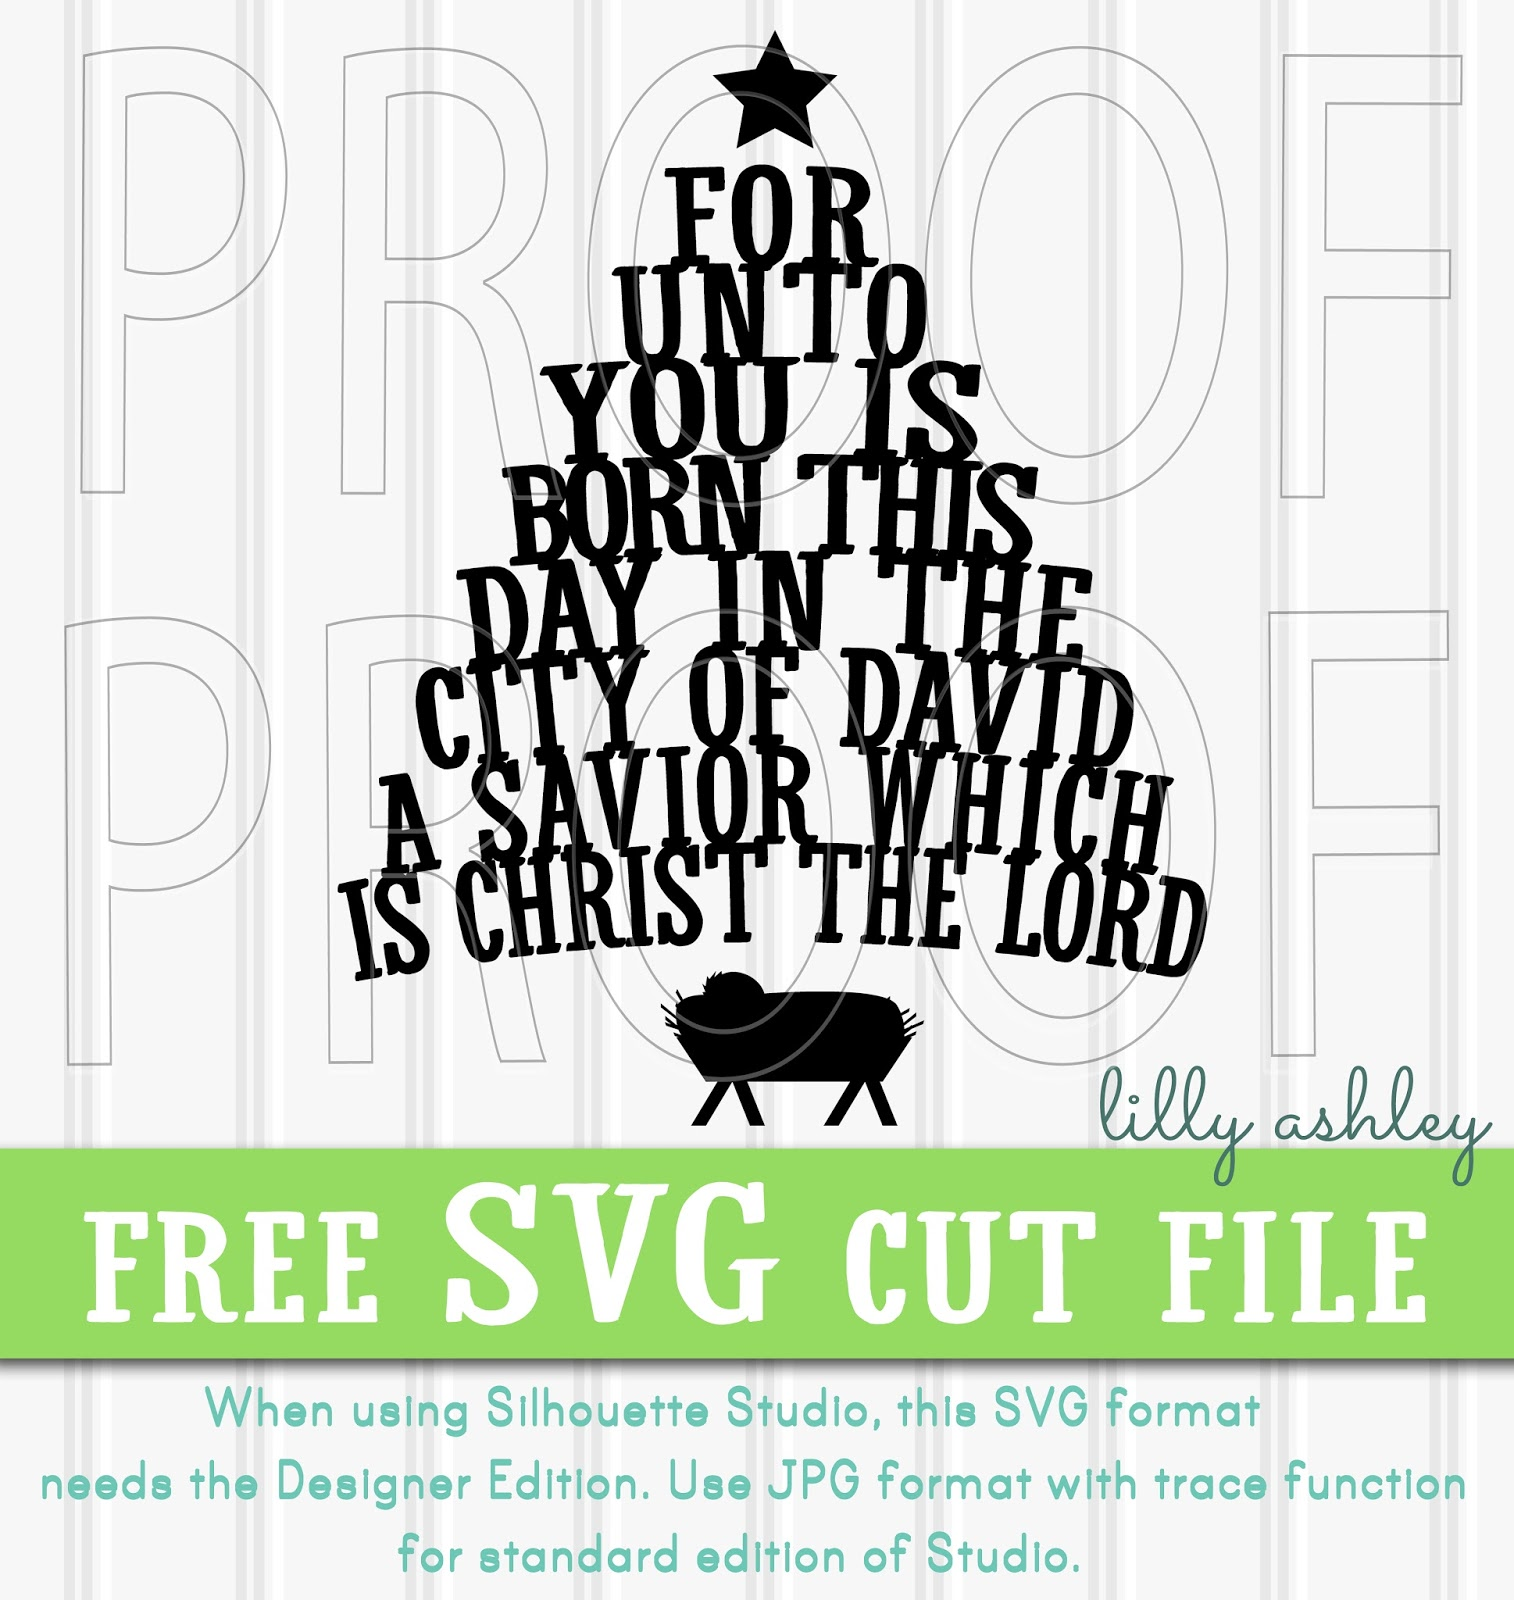 Free Christmas Svg.Make It Create Free Cut Files And Printables Free